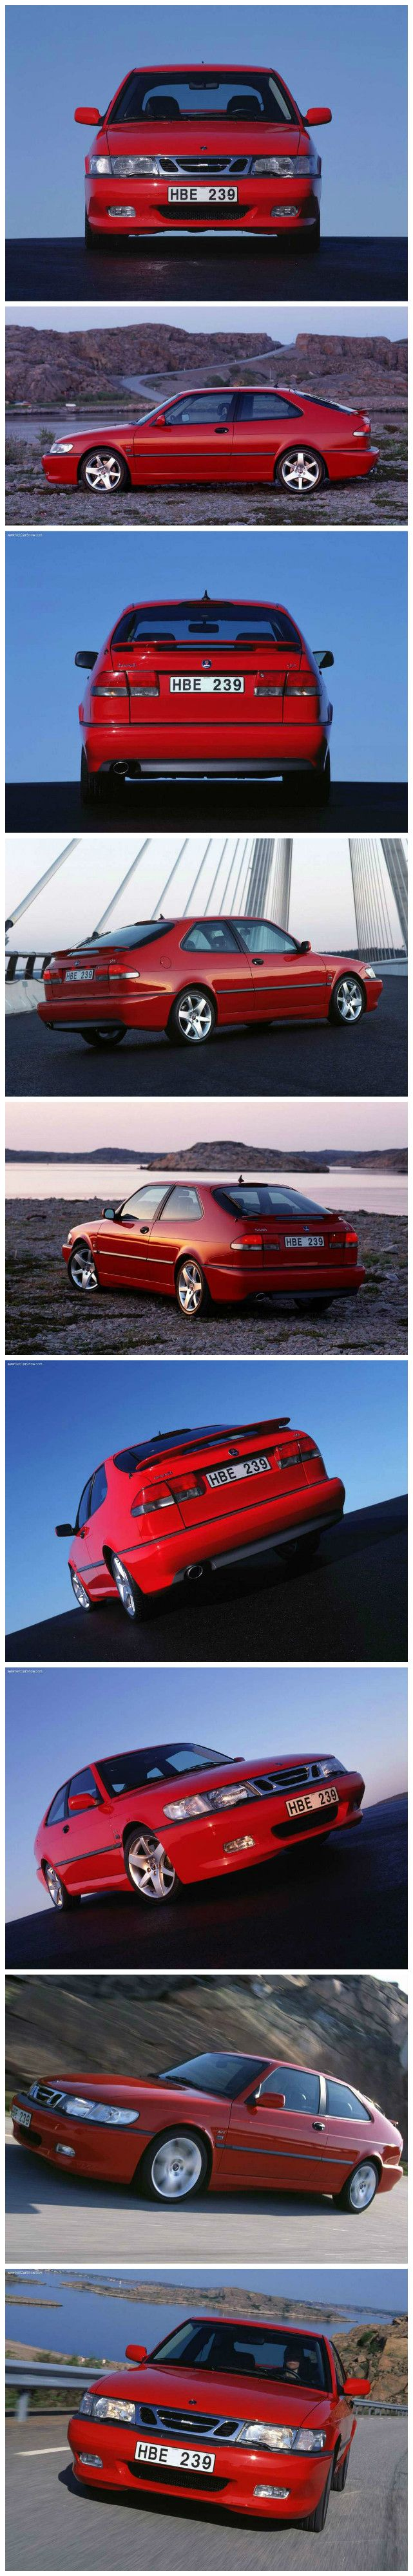 The saab 9 3 1999 2003 is an entry level luxury compact